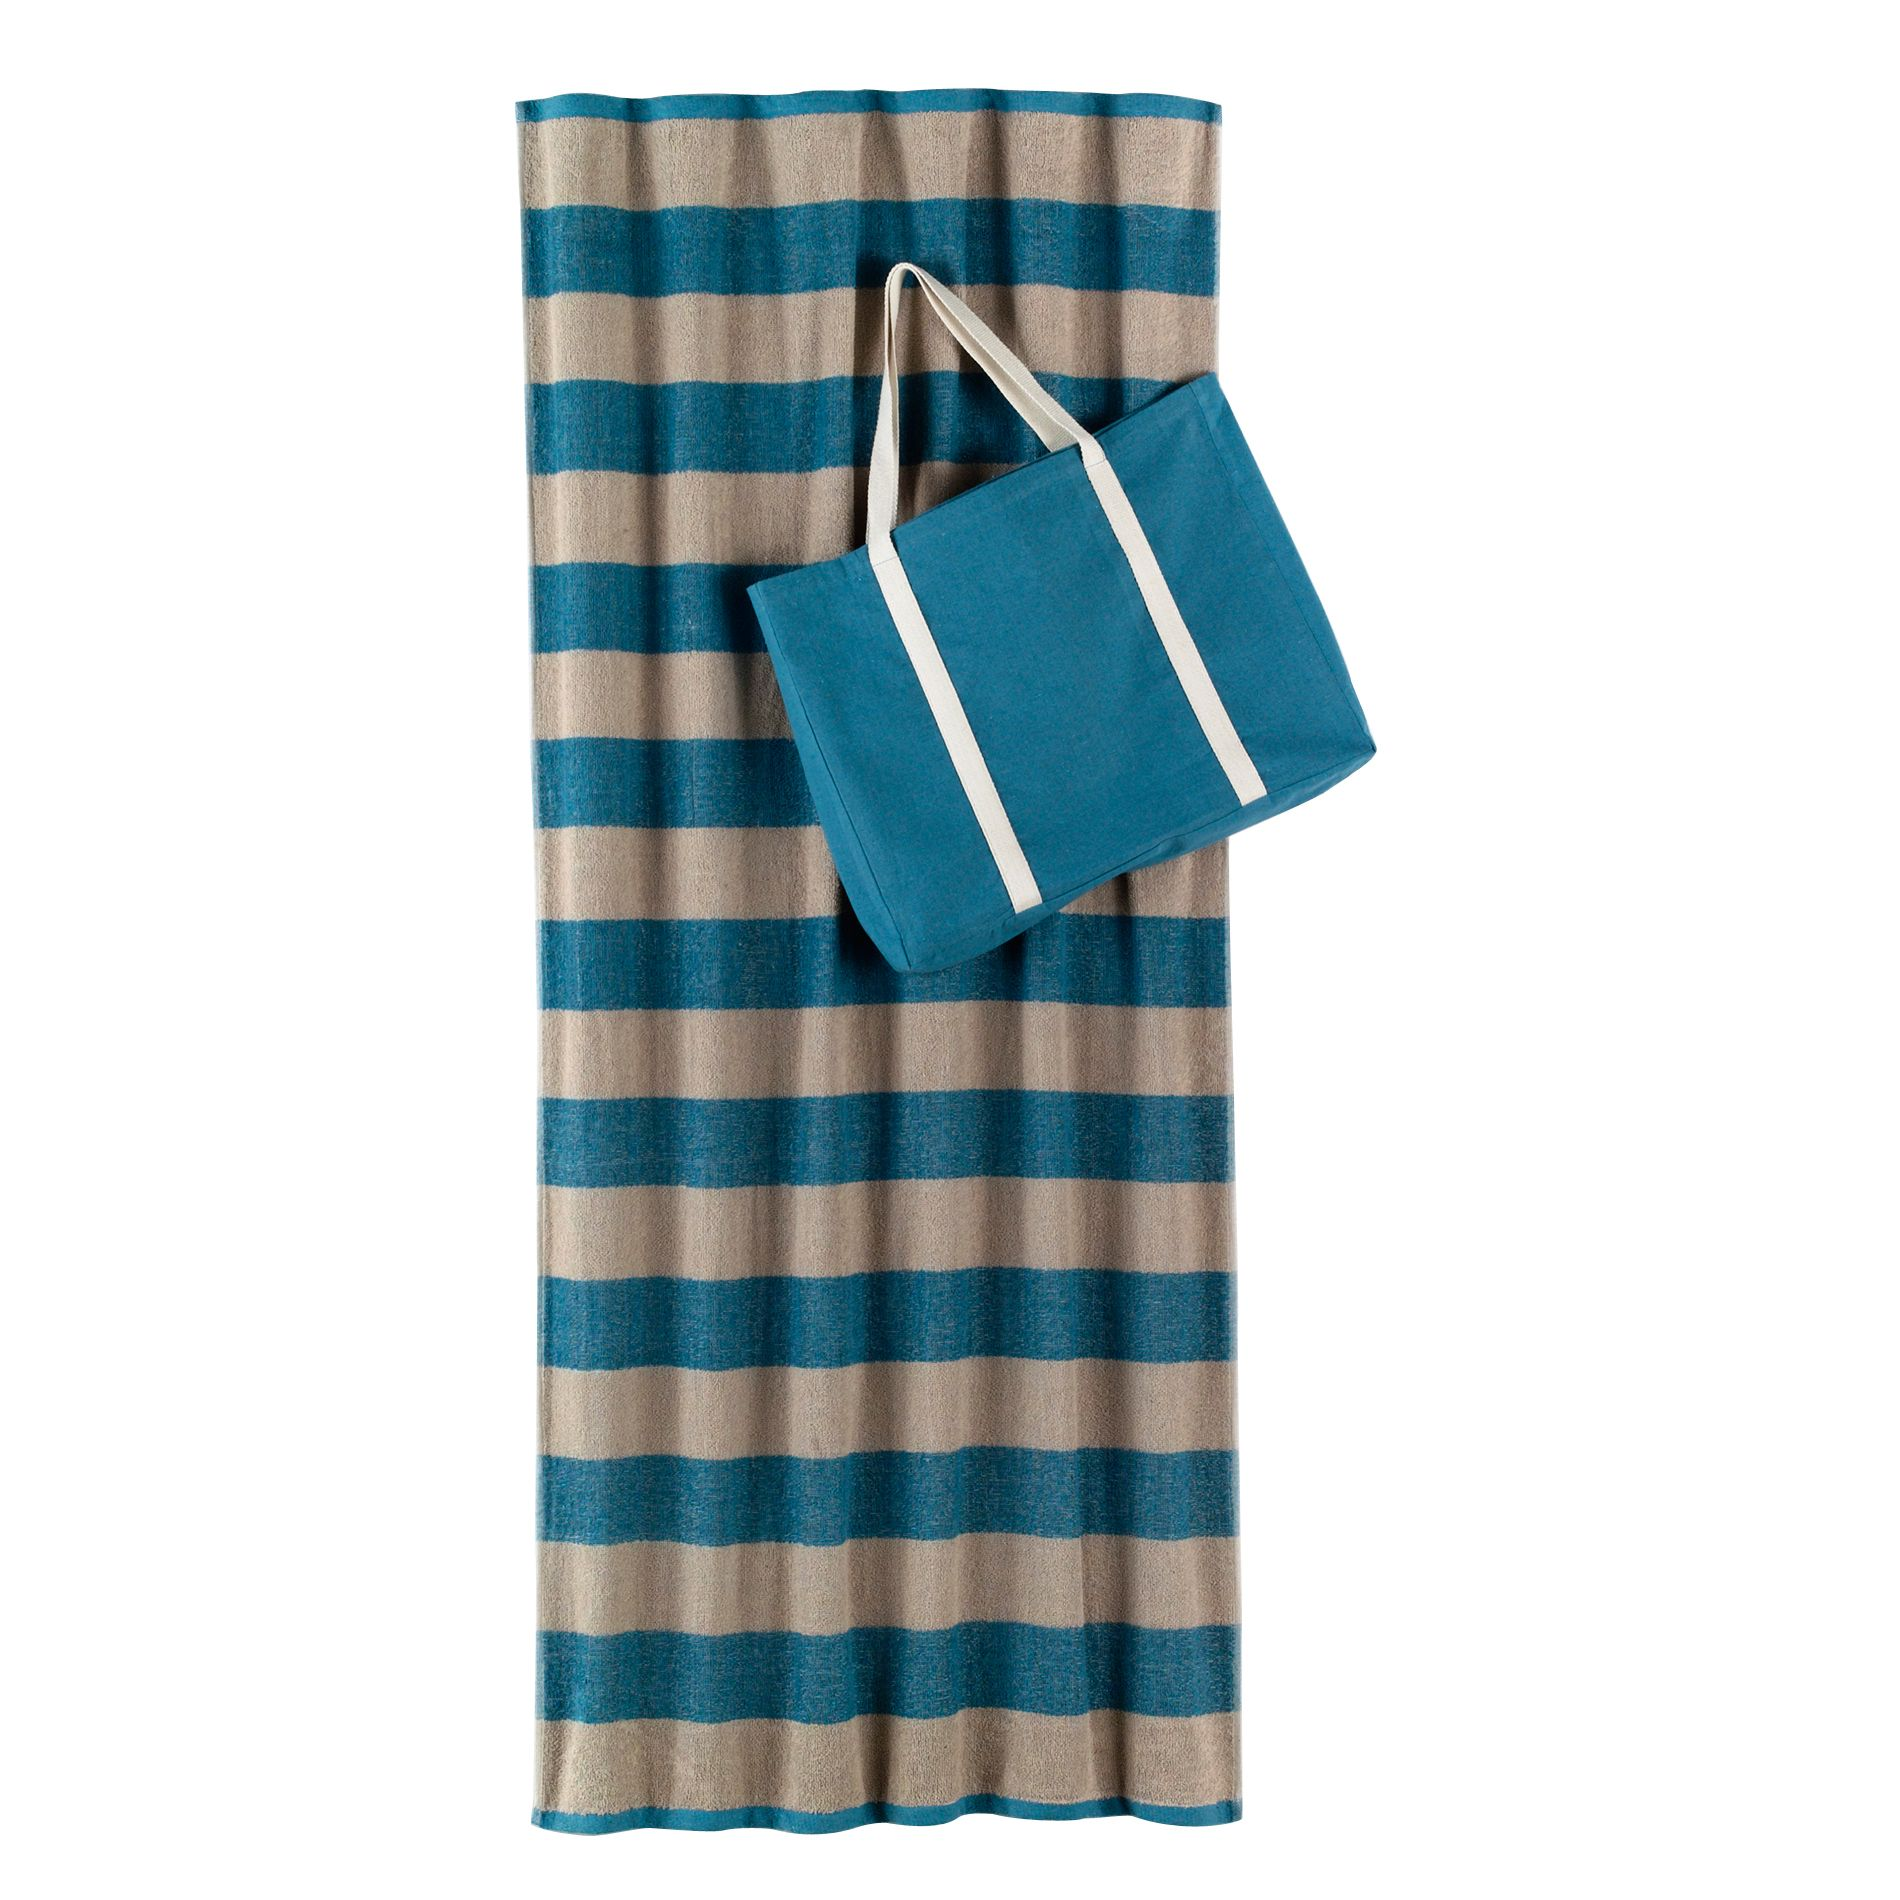 Beach Towel And Tote Set in Teal